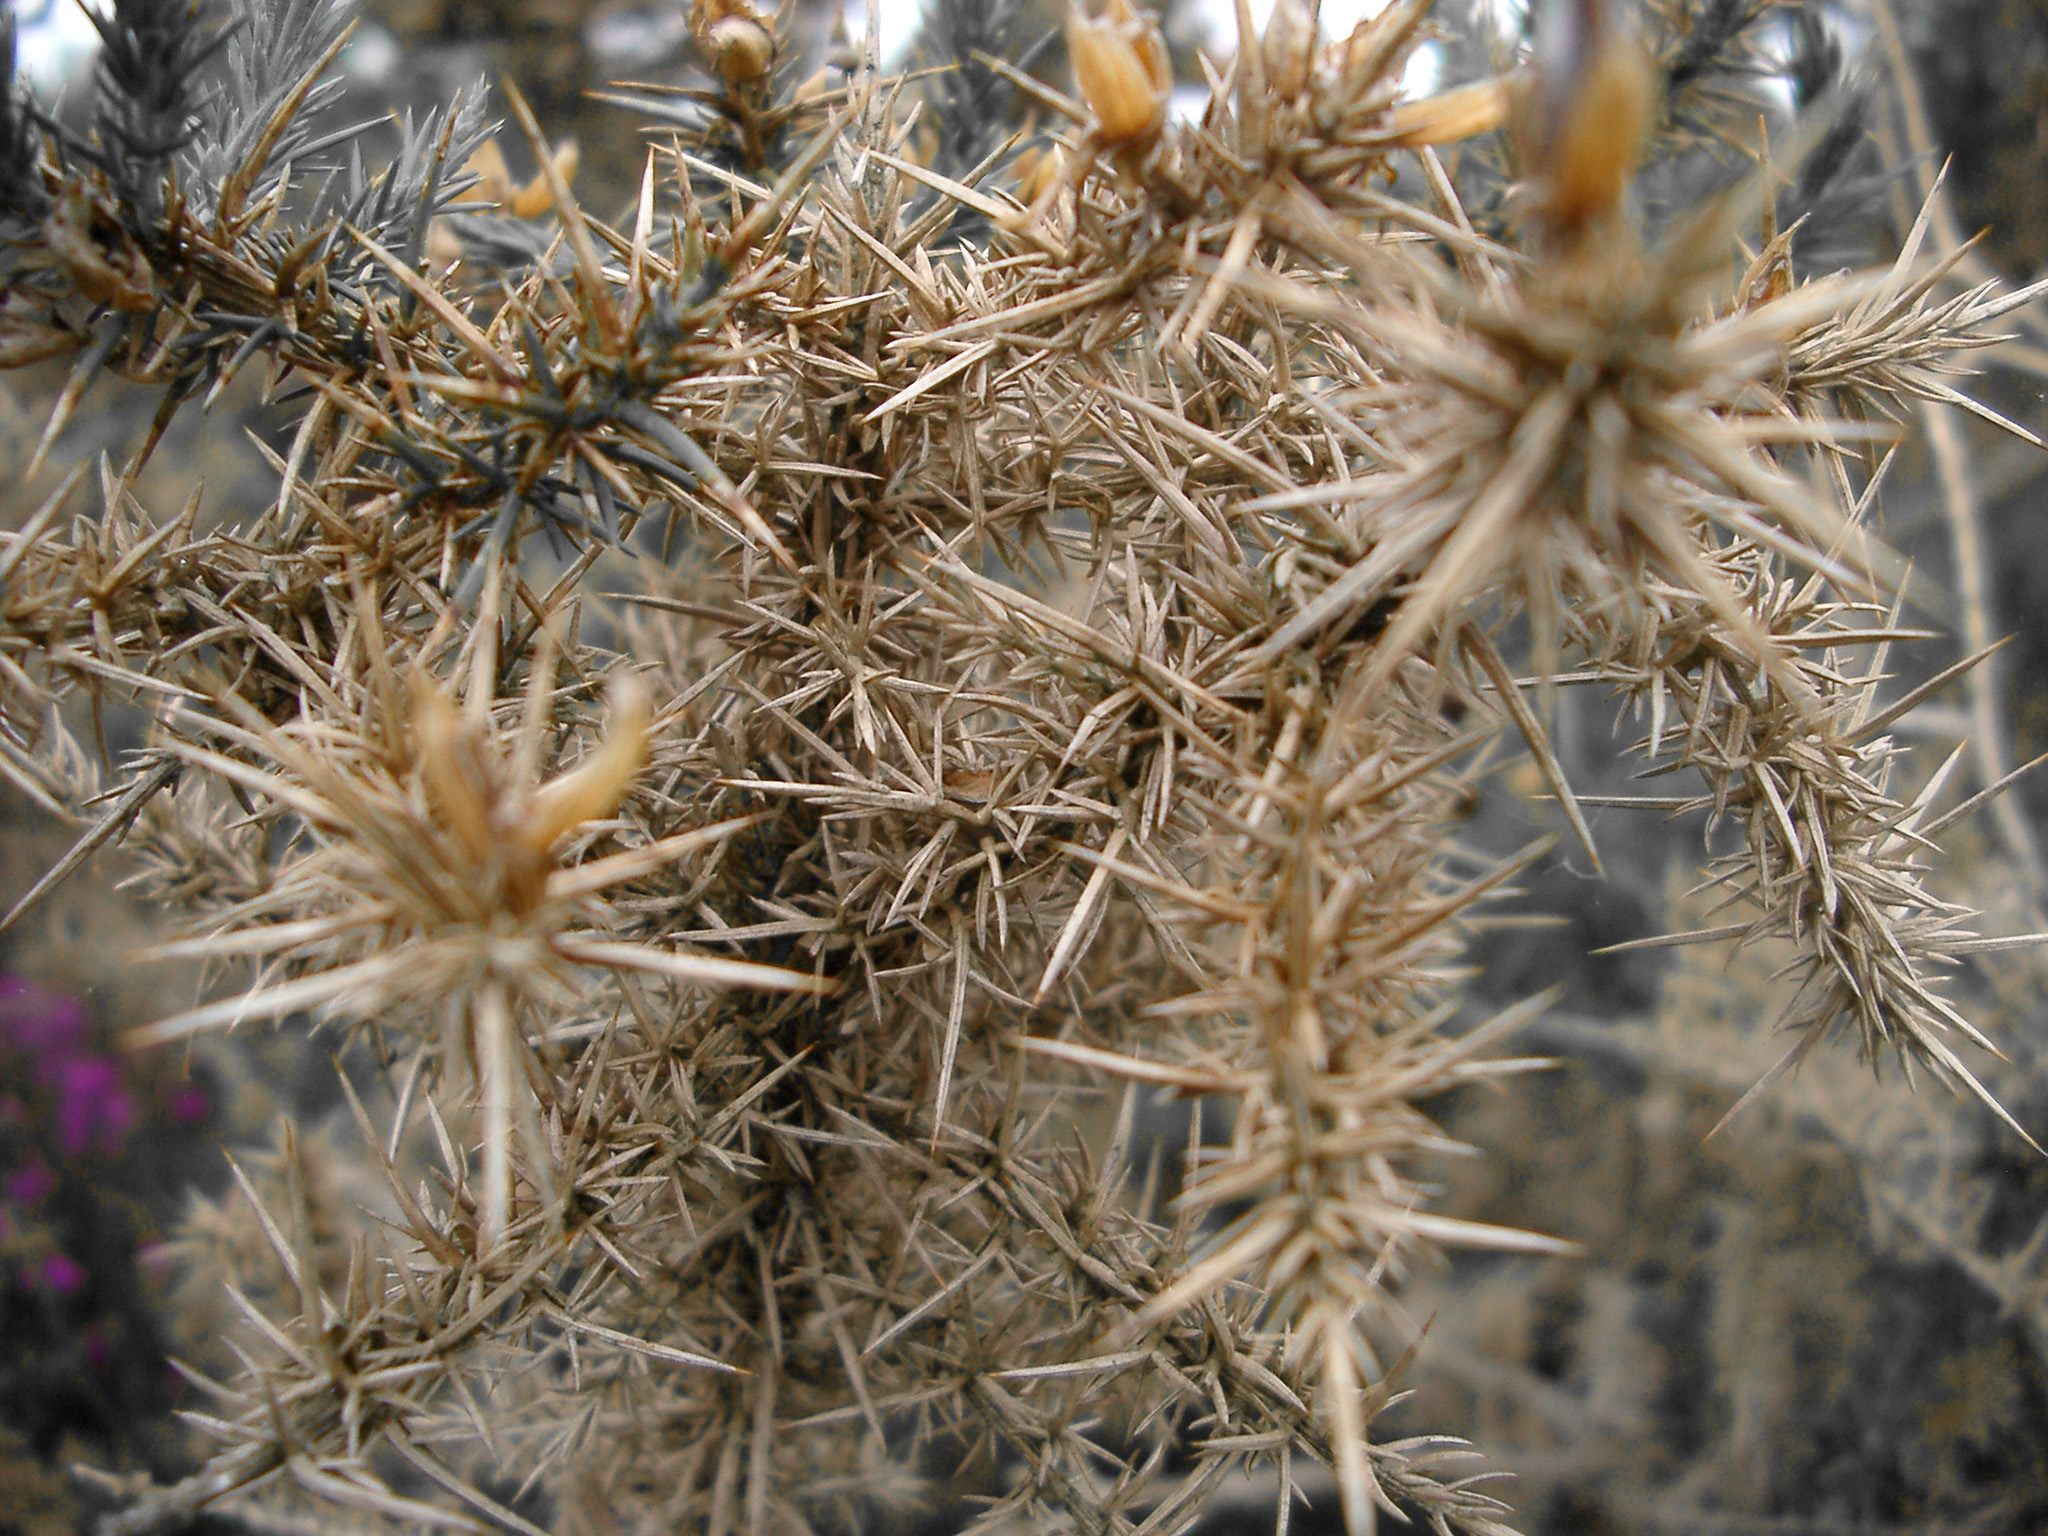 Tangled mass of prickly thrones or briars with their thorny spines, close up background view